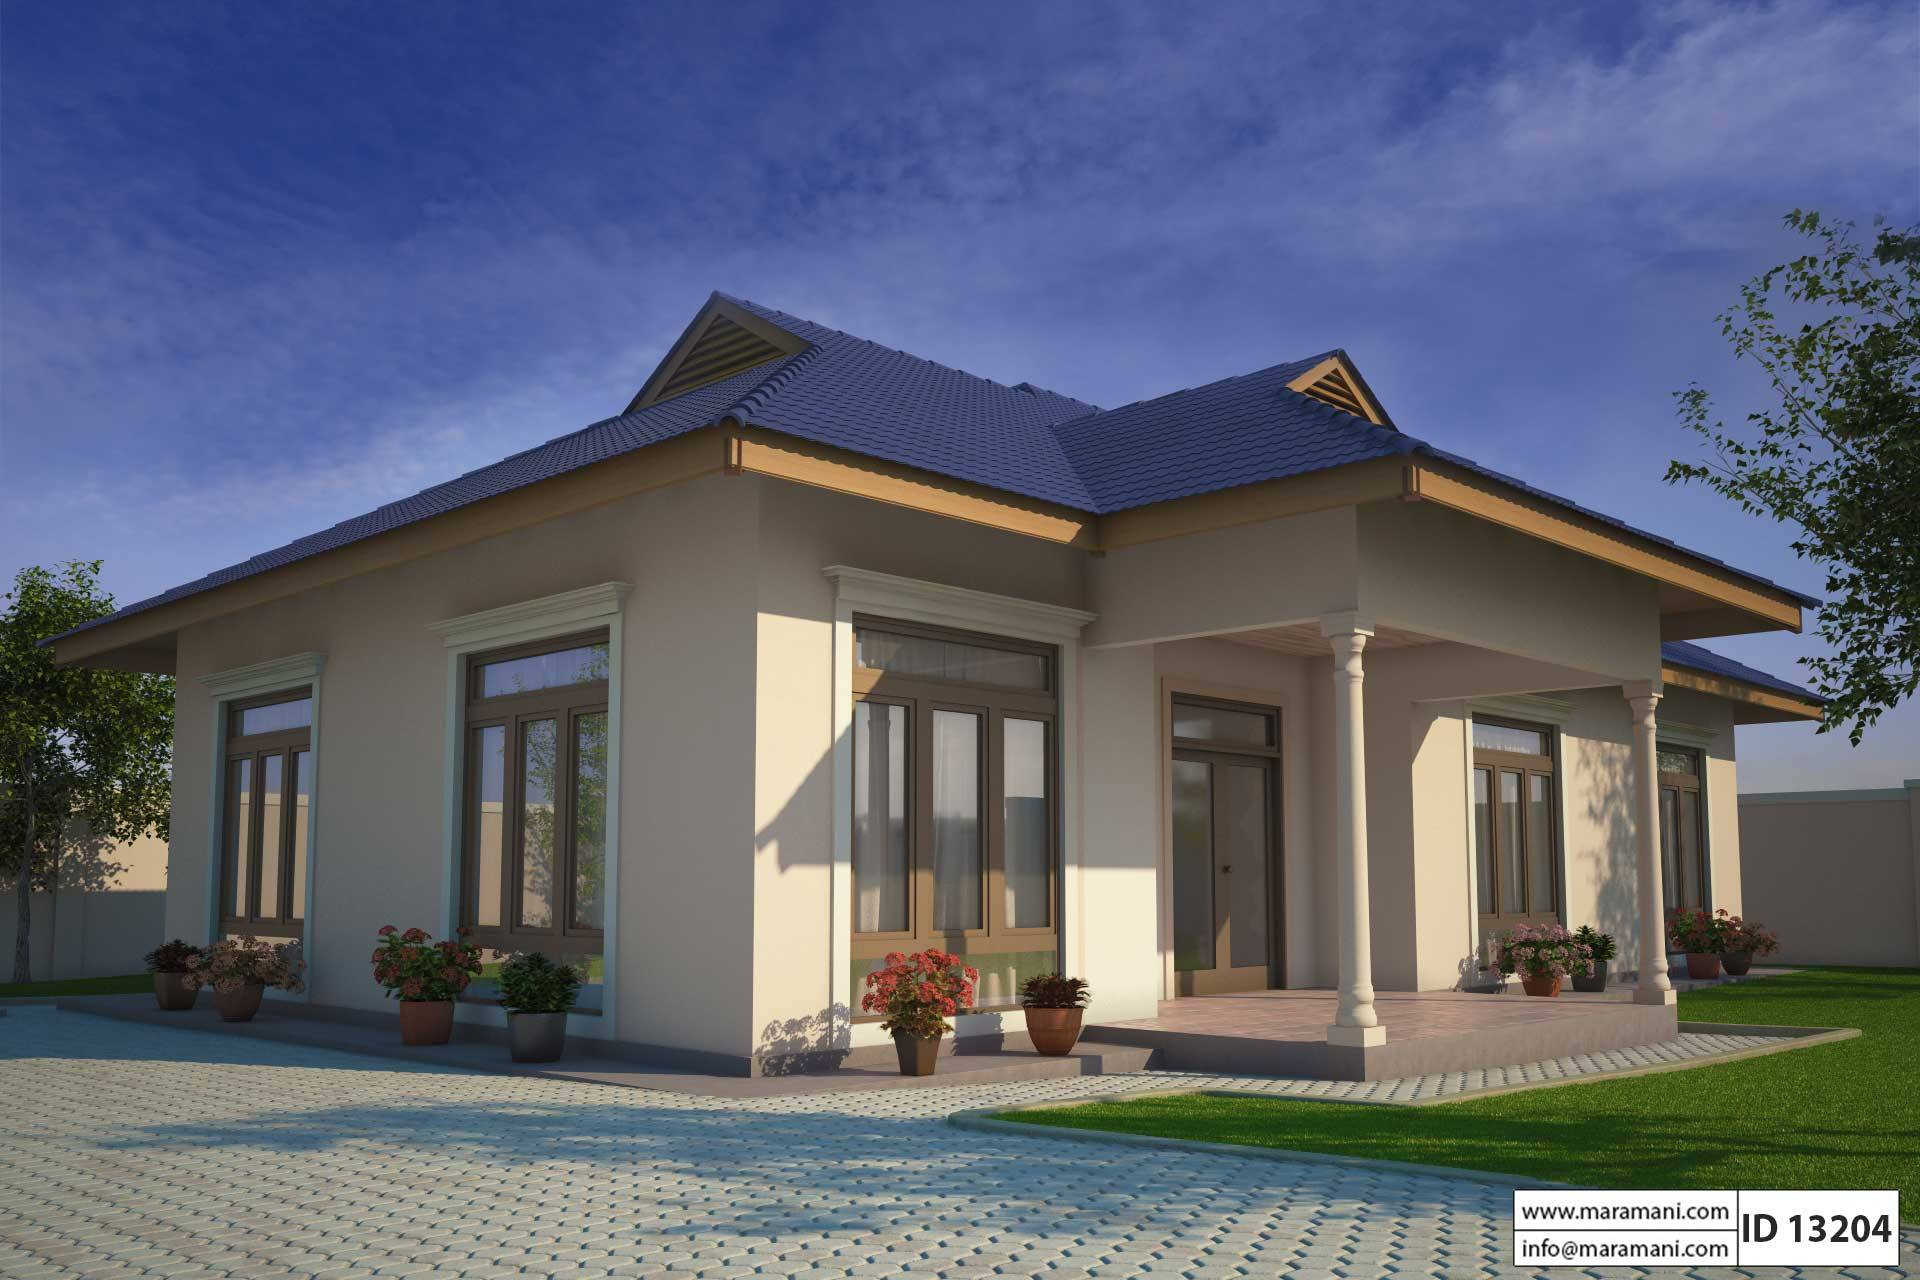 Three bedroom house id 13204 for Beautiful 5 bedroom house plans with pictures